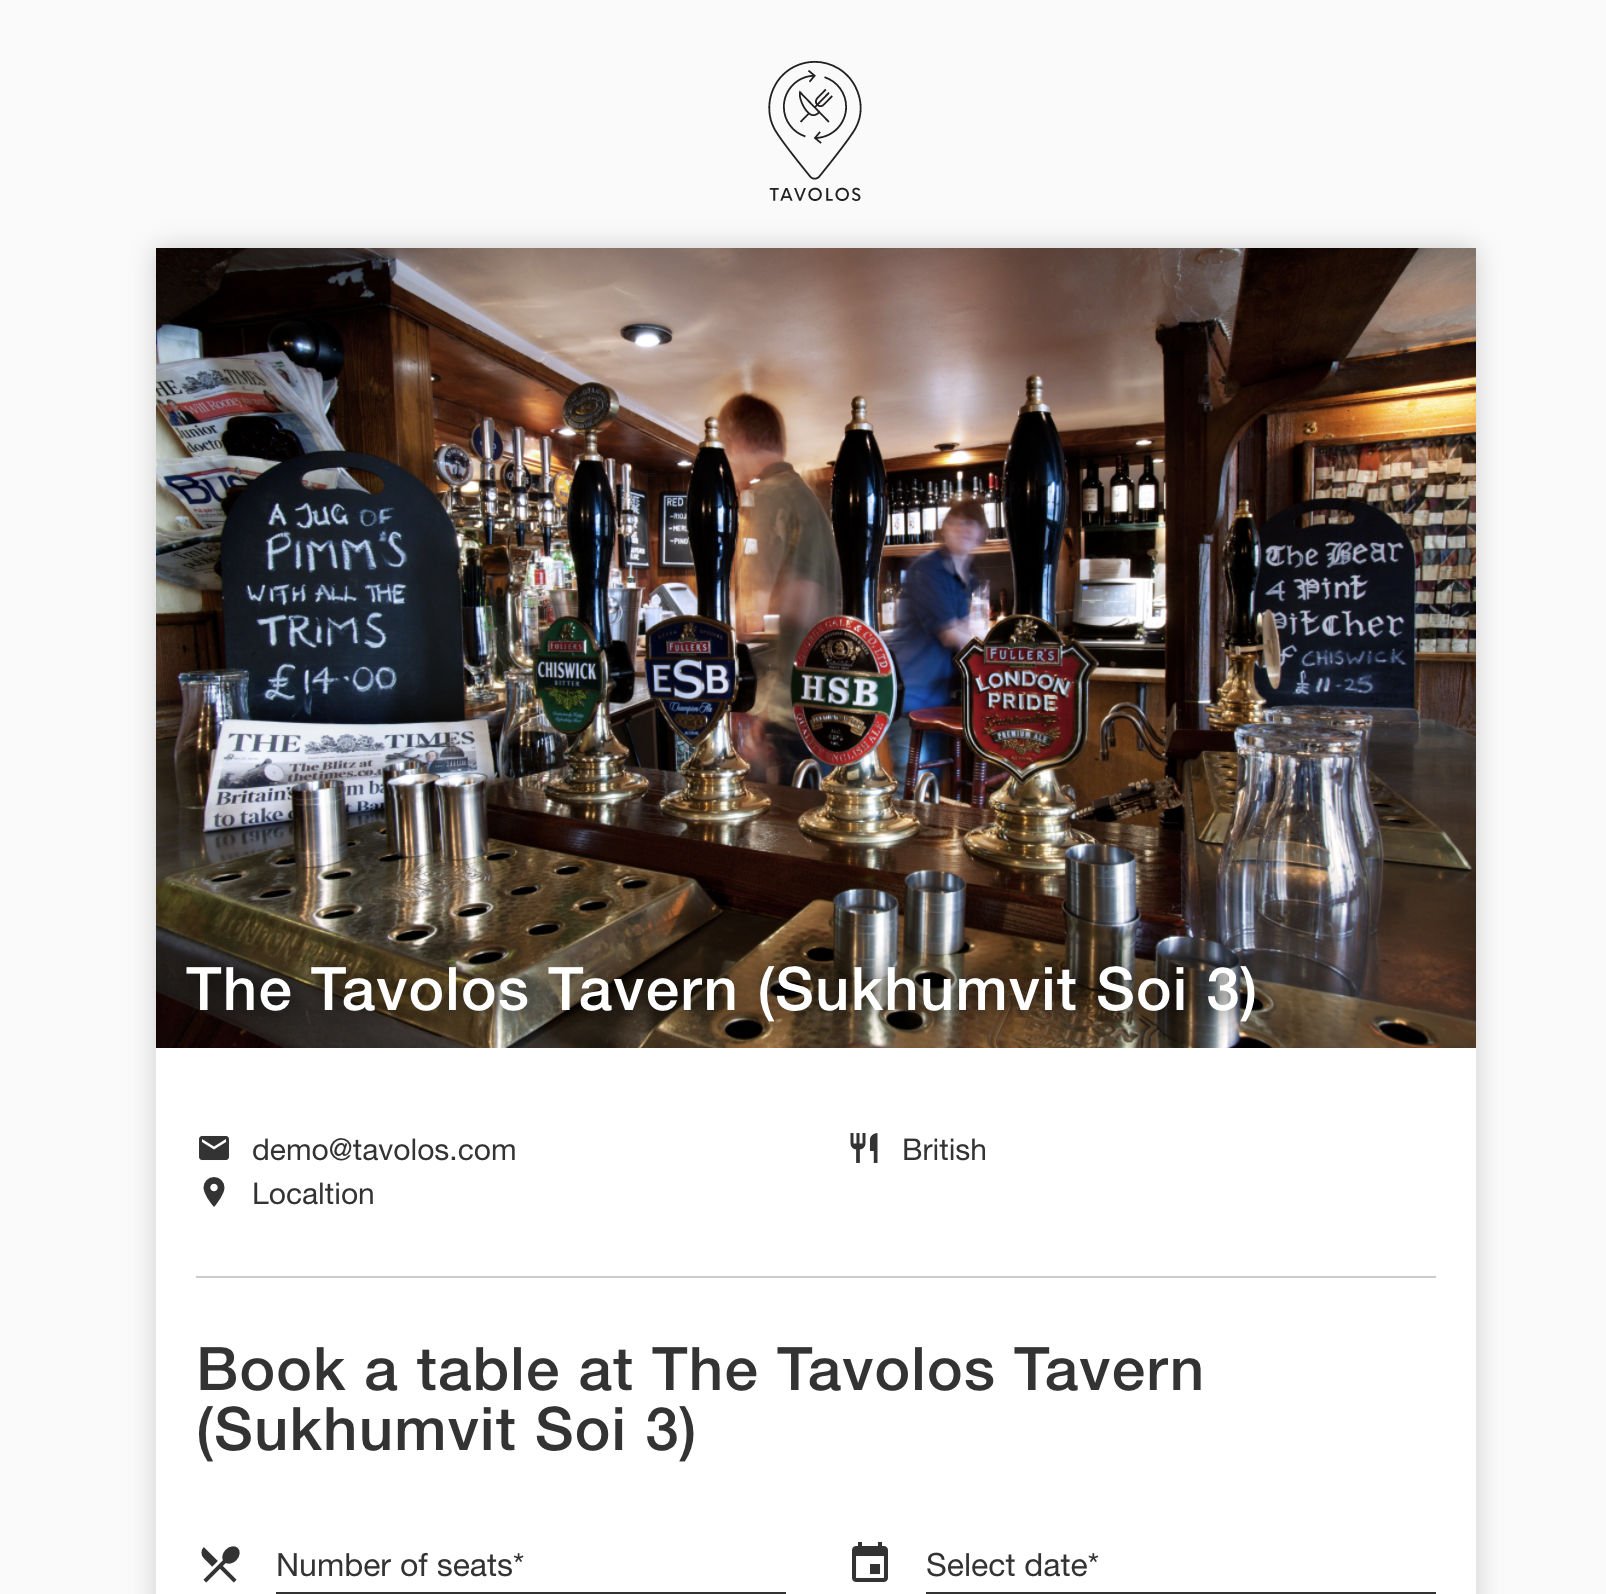 The Tavolos restaurant reservation page.